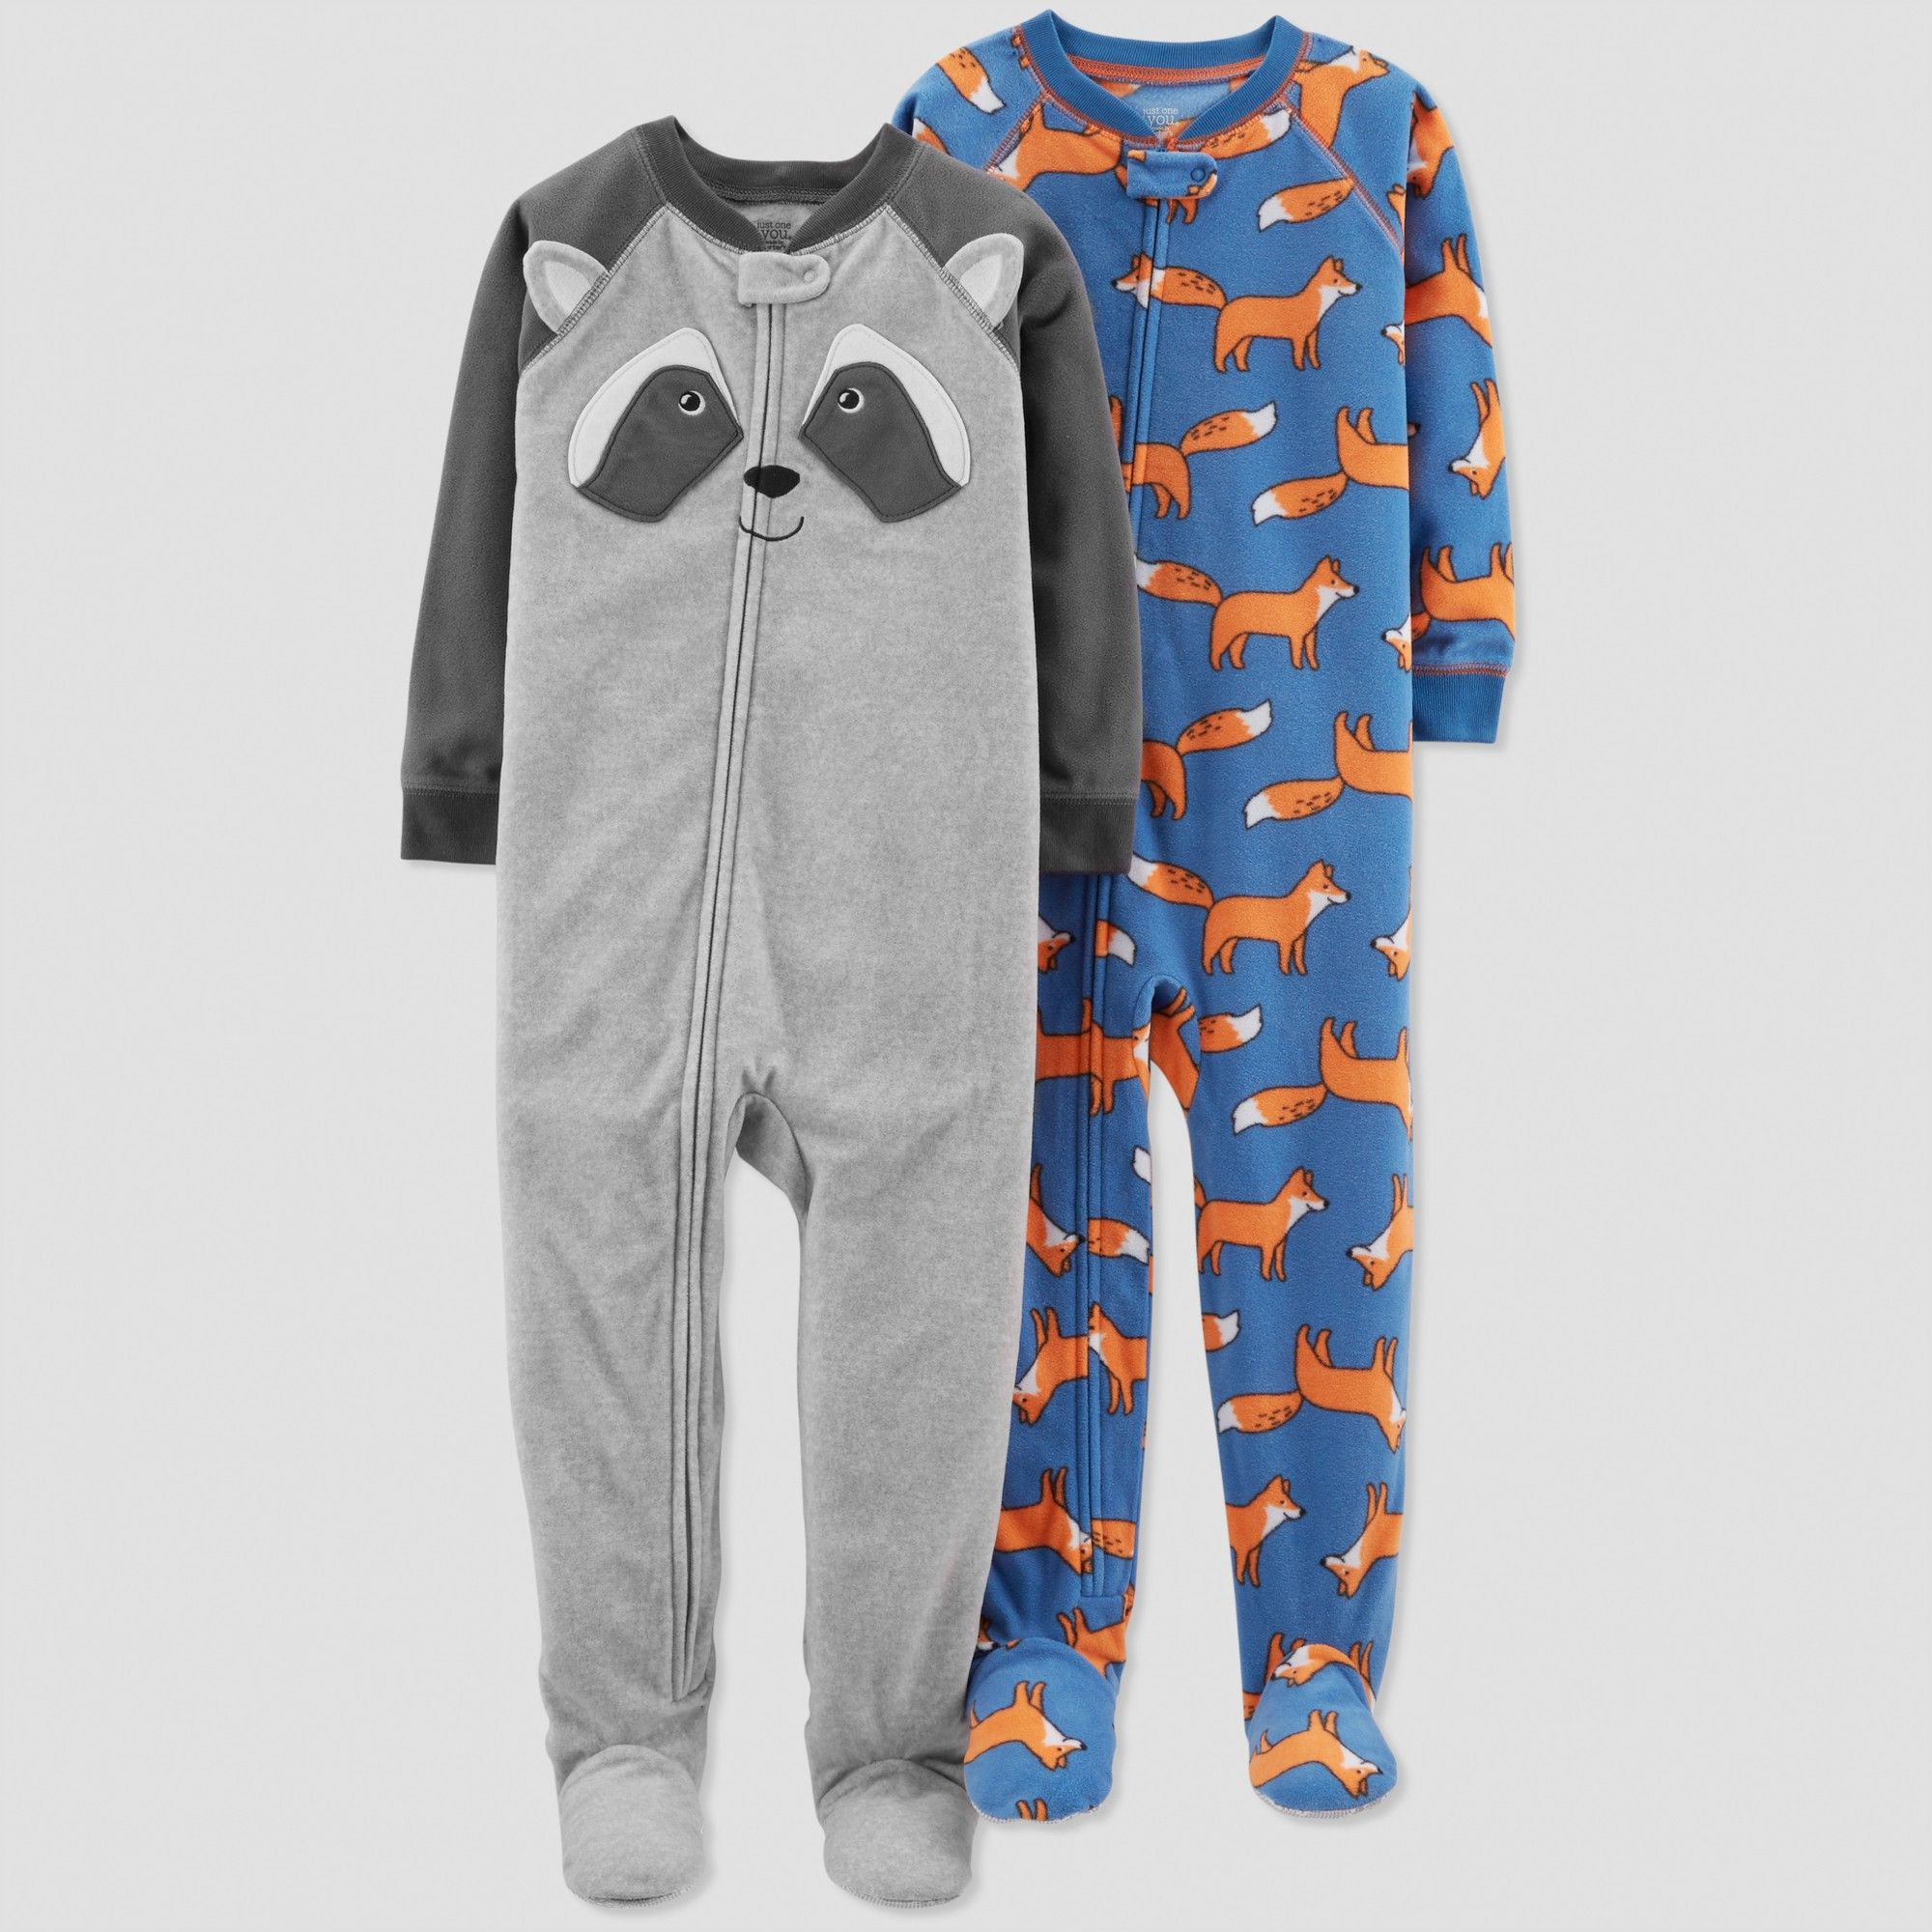 a479c77cac28 Toddler Boys  Raccoon Pajama Set - Just One You made by carter s ...